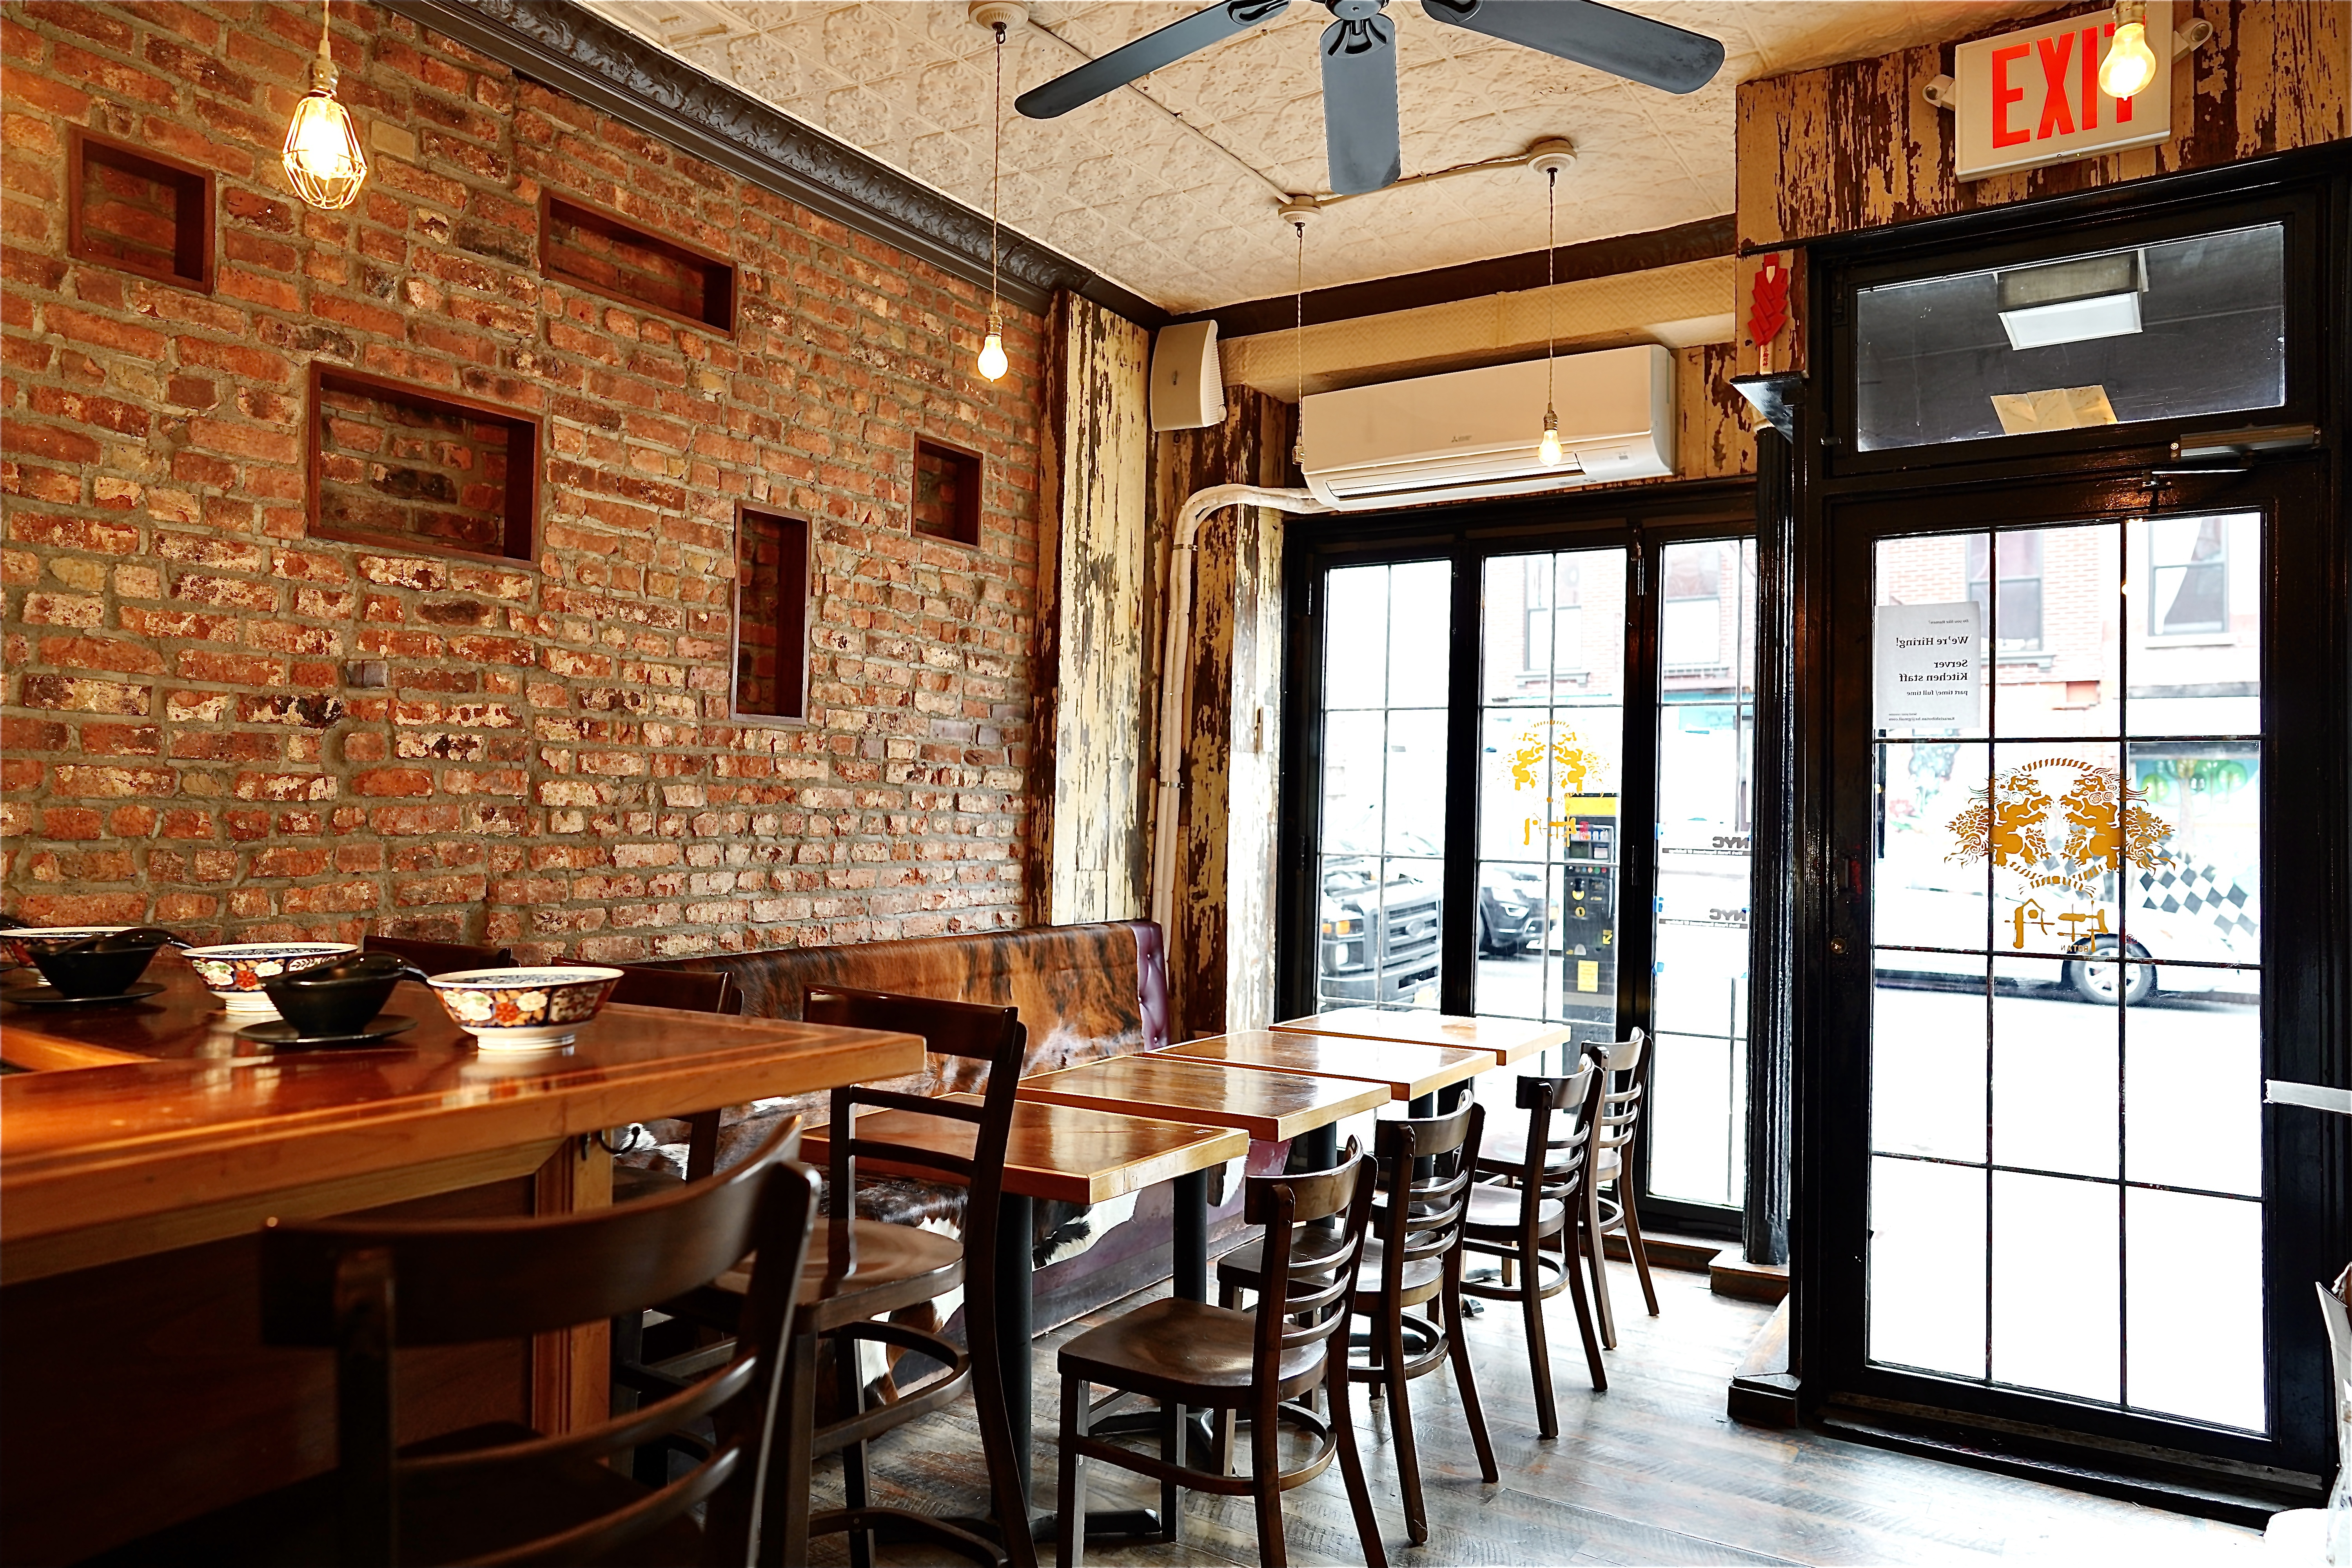 Inside a small restaurant with exposed red brick walls, glass windows with panels and a set of wooden chairs and tables